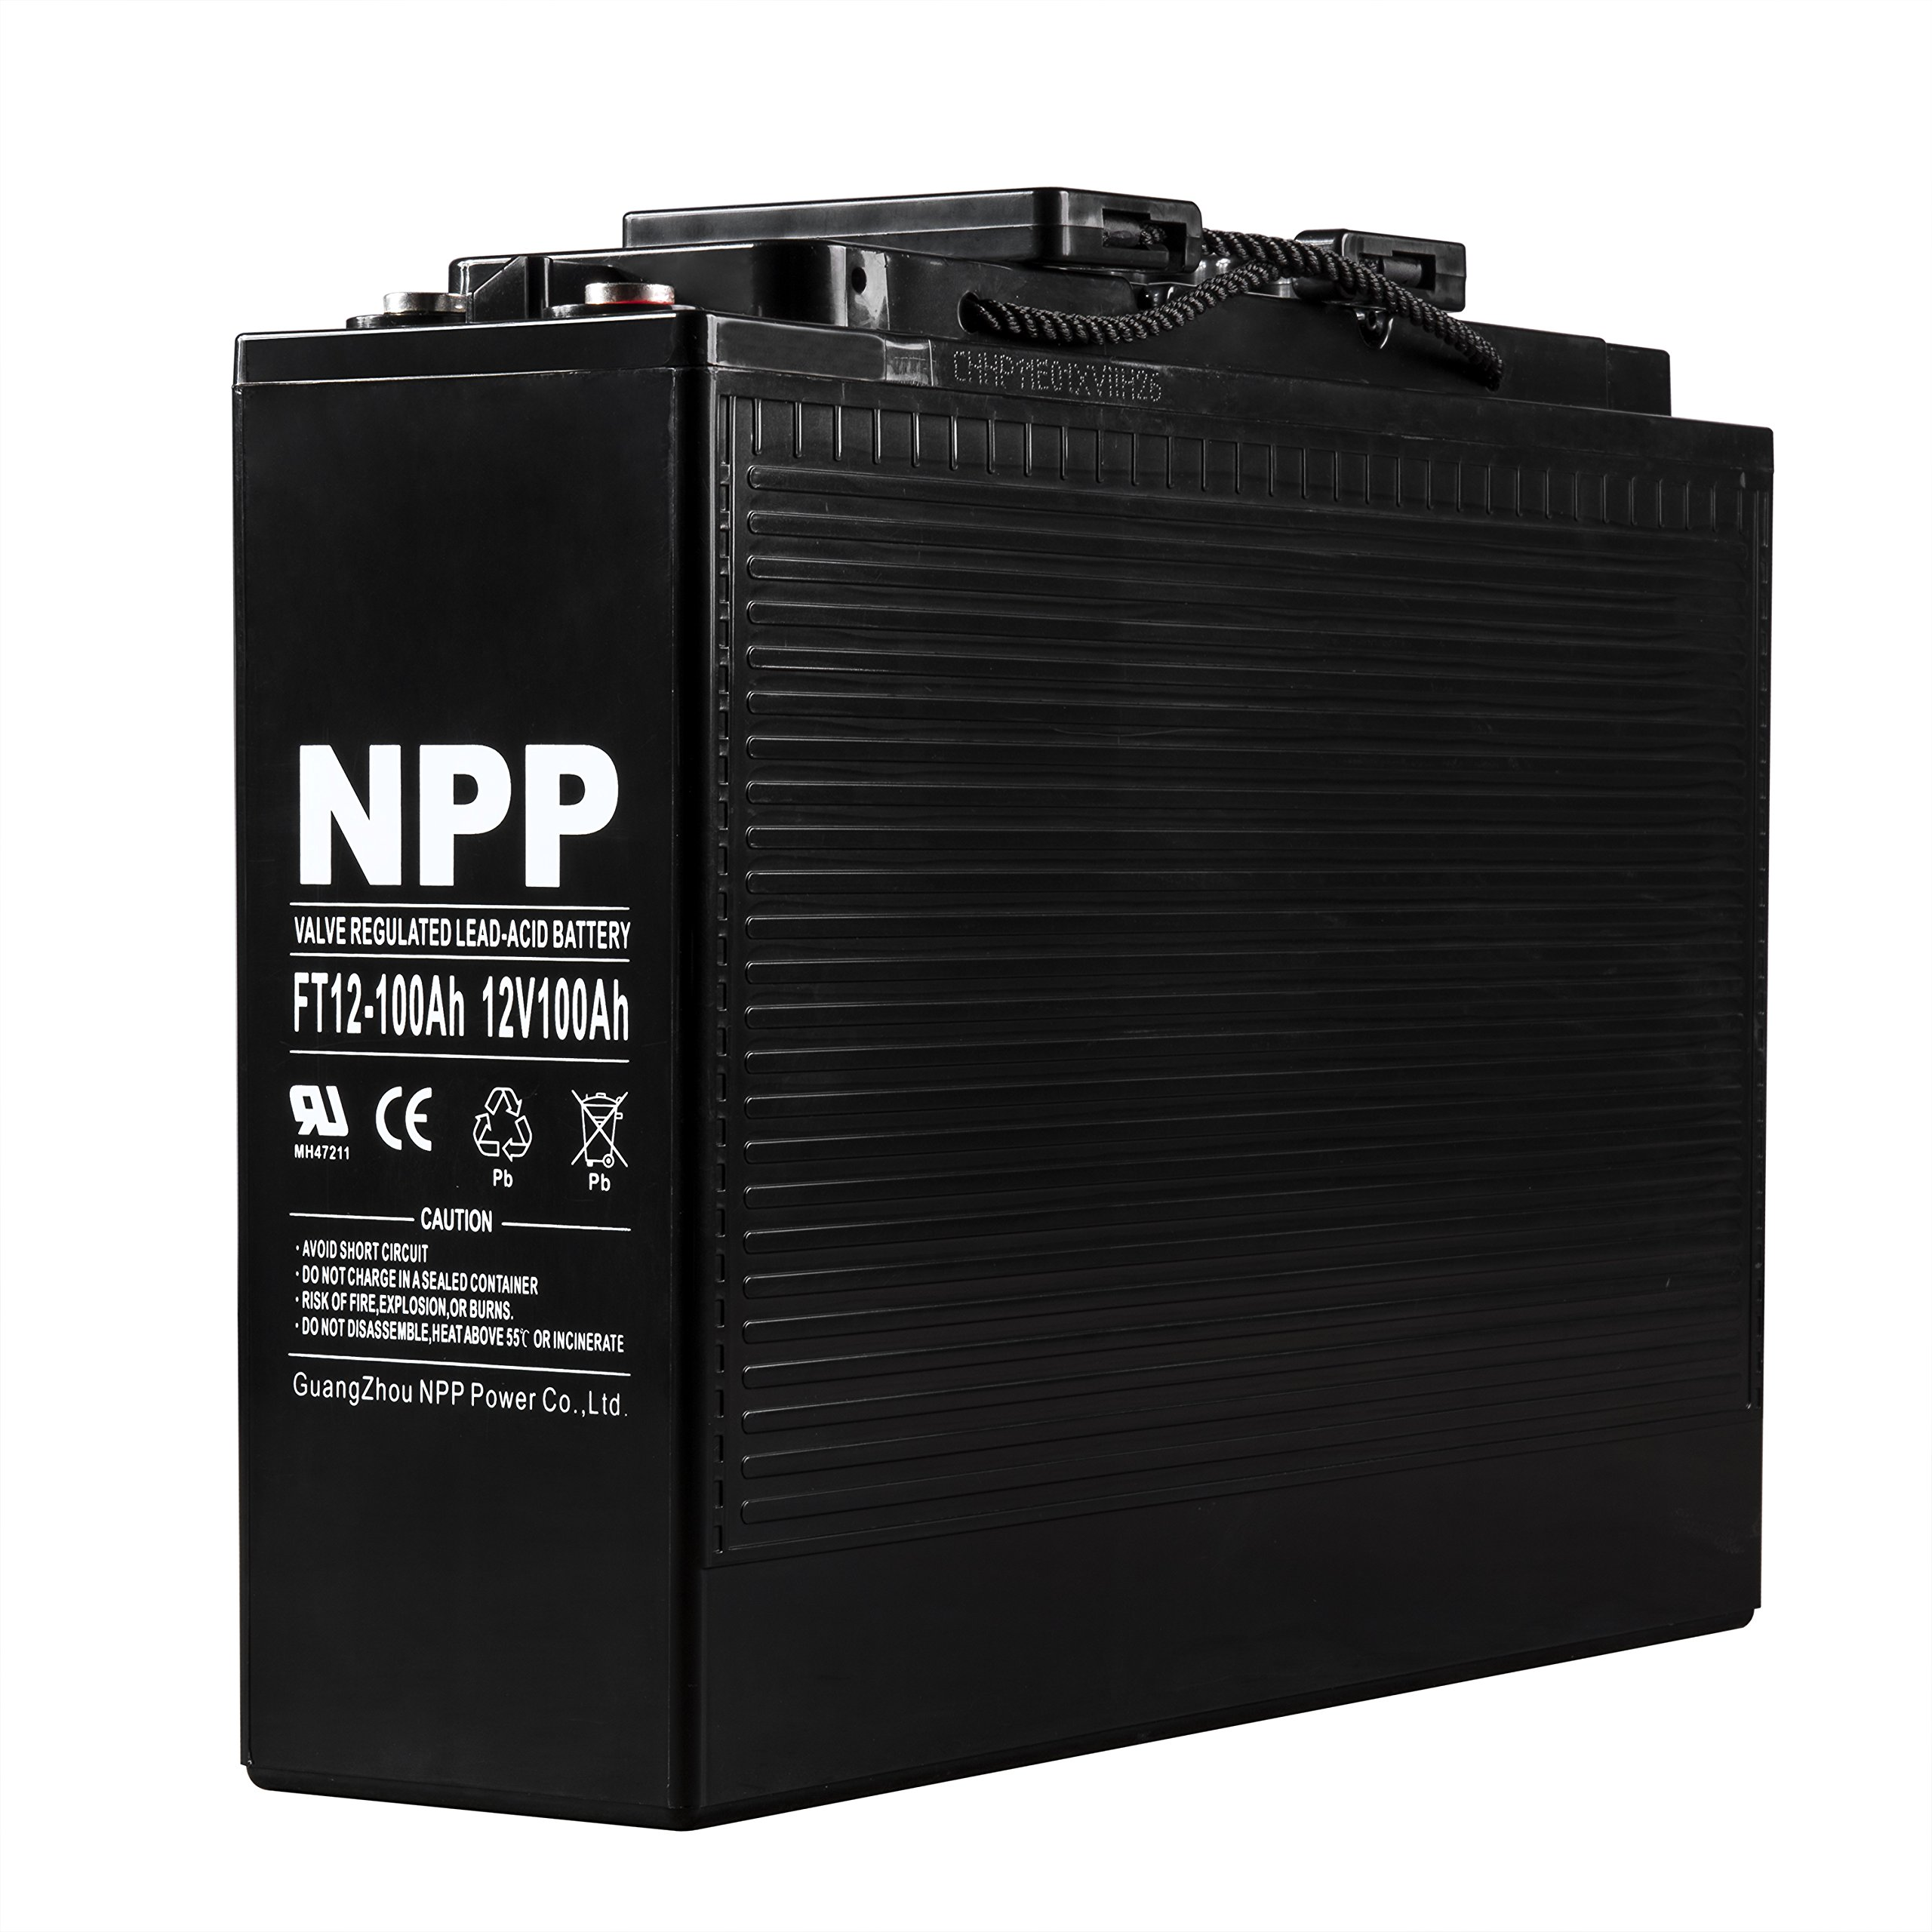 NPP 12V 100 Amp FT12 100Ah Front Access Telecom Deep Cycle AGM Battery With Button Style Terminals by NPP